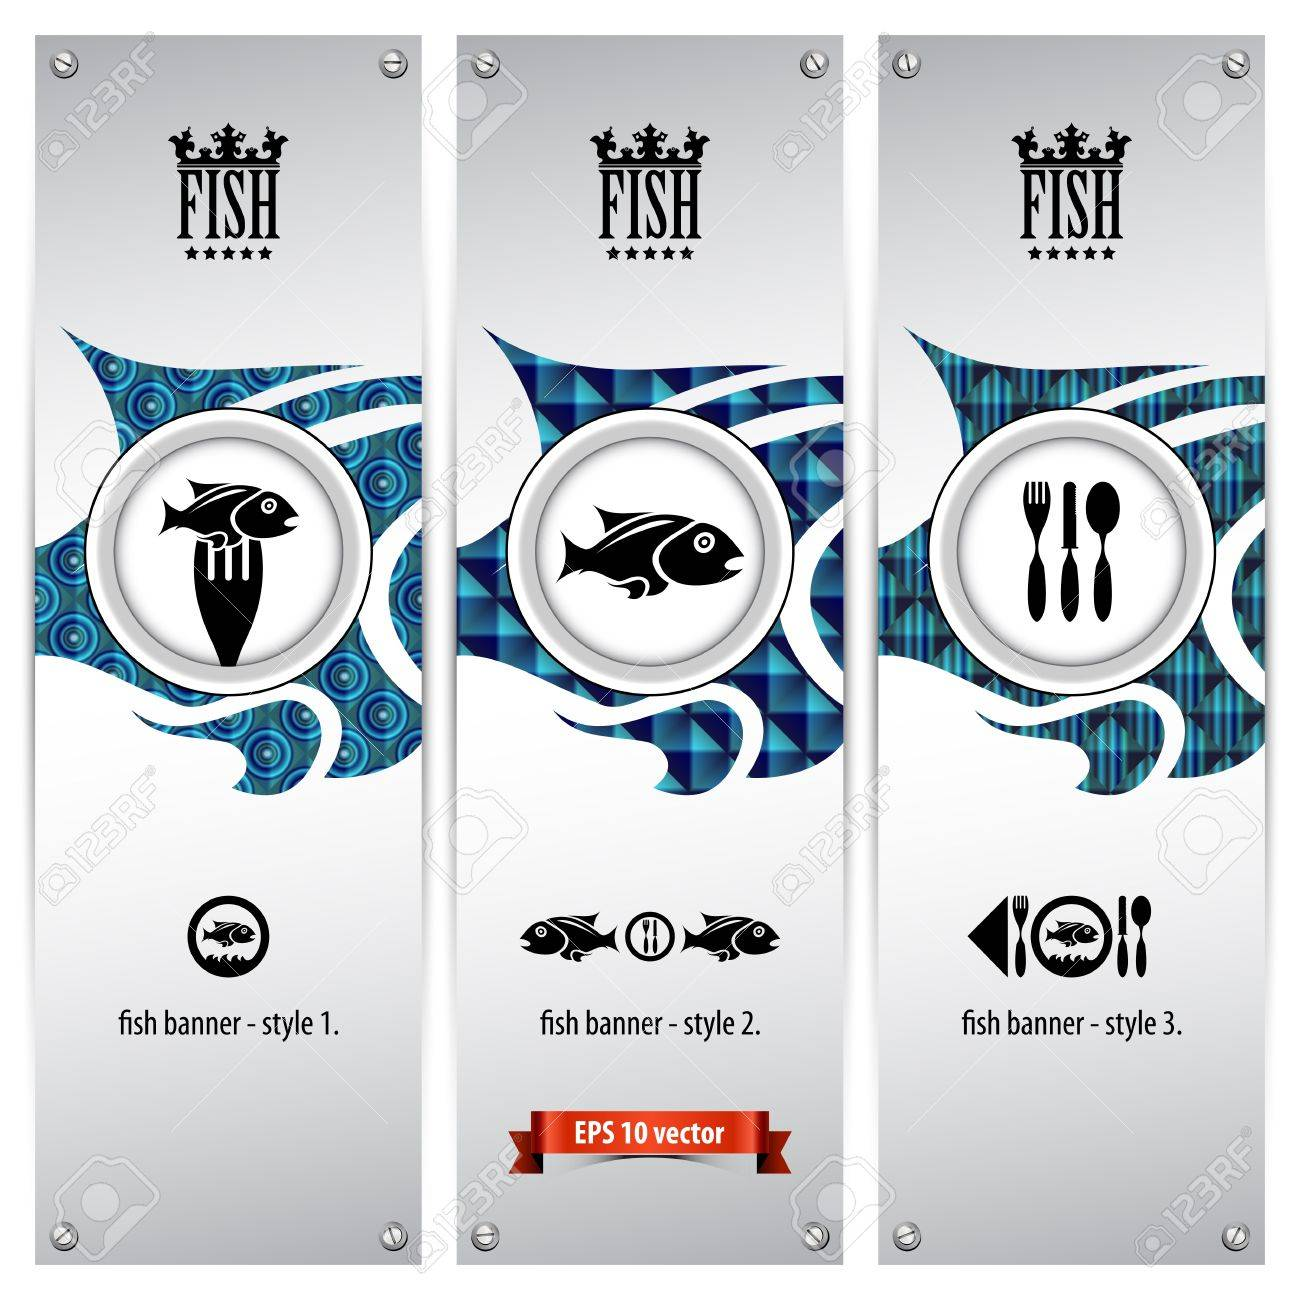 three variations of fish banners with different geometrical designs, these templates are ideal for web banners, eps 10, contain transparencies Stock Vector - 20015661